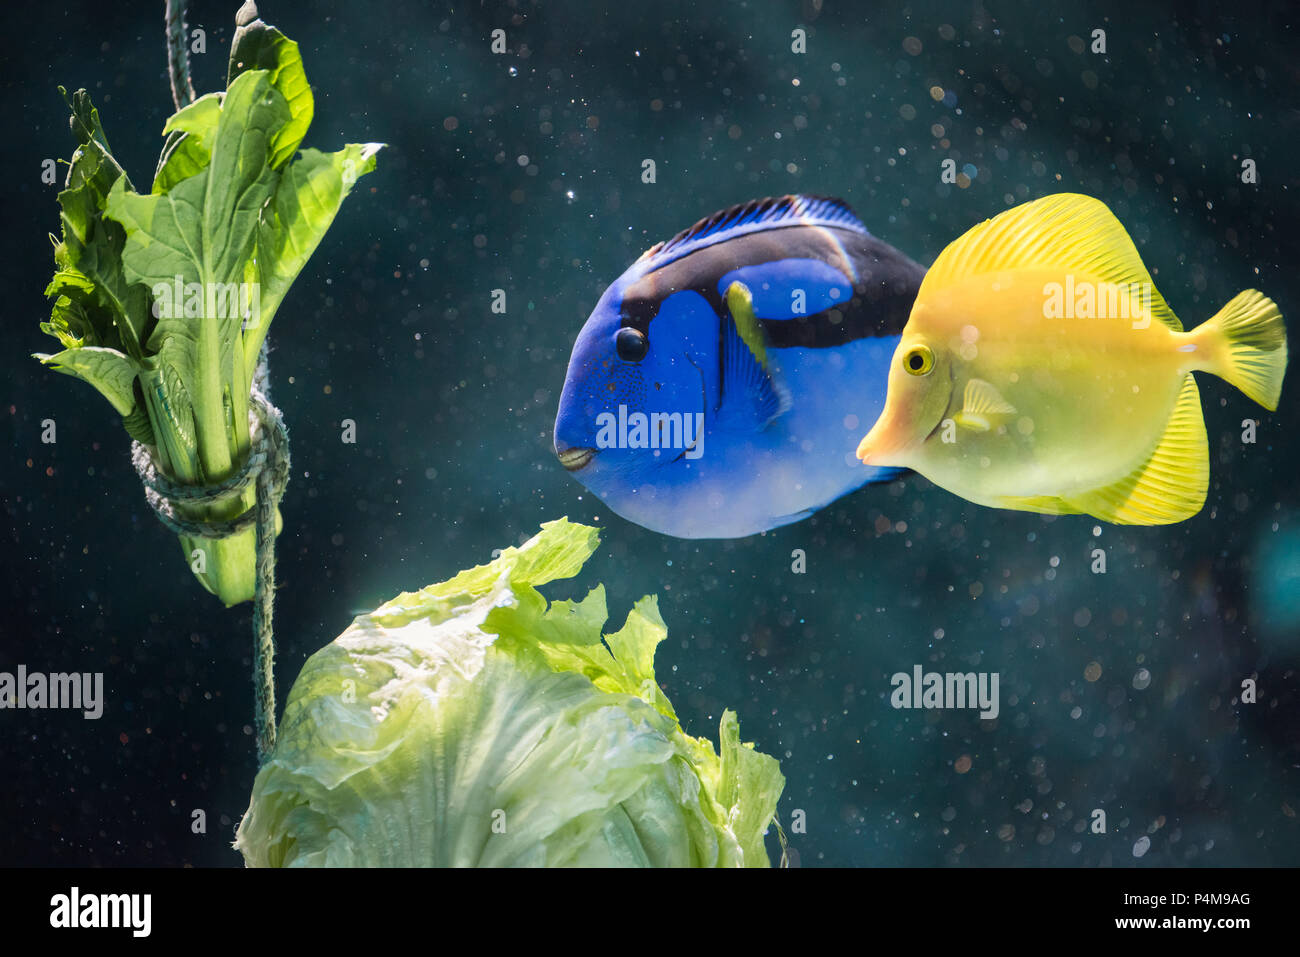 A Regal Blue Tang and Yellow Tang enjoy some lettuce as a form of enrichment at the Port of Nagoya Aquarium in Japan. - Stock Image